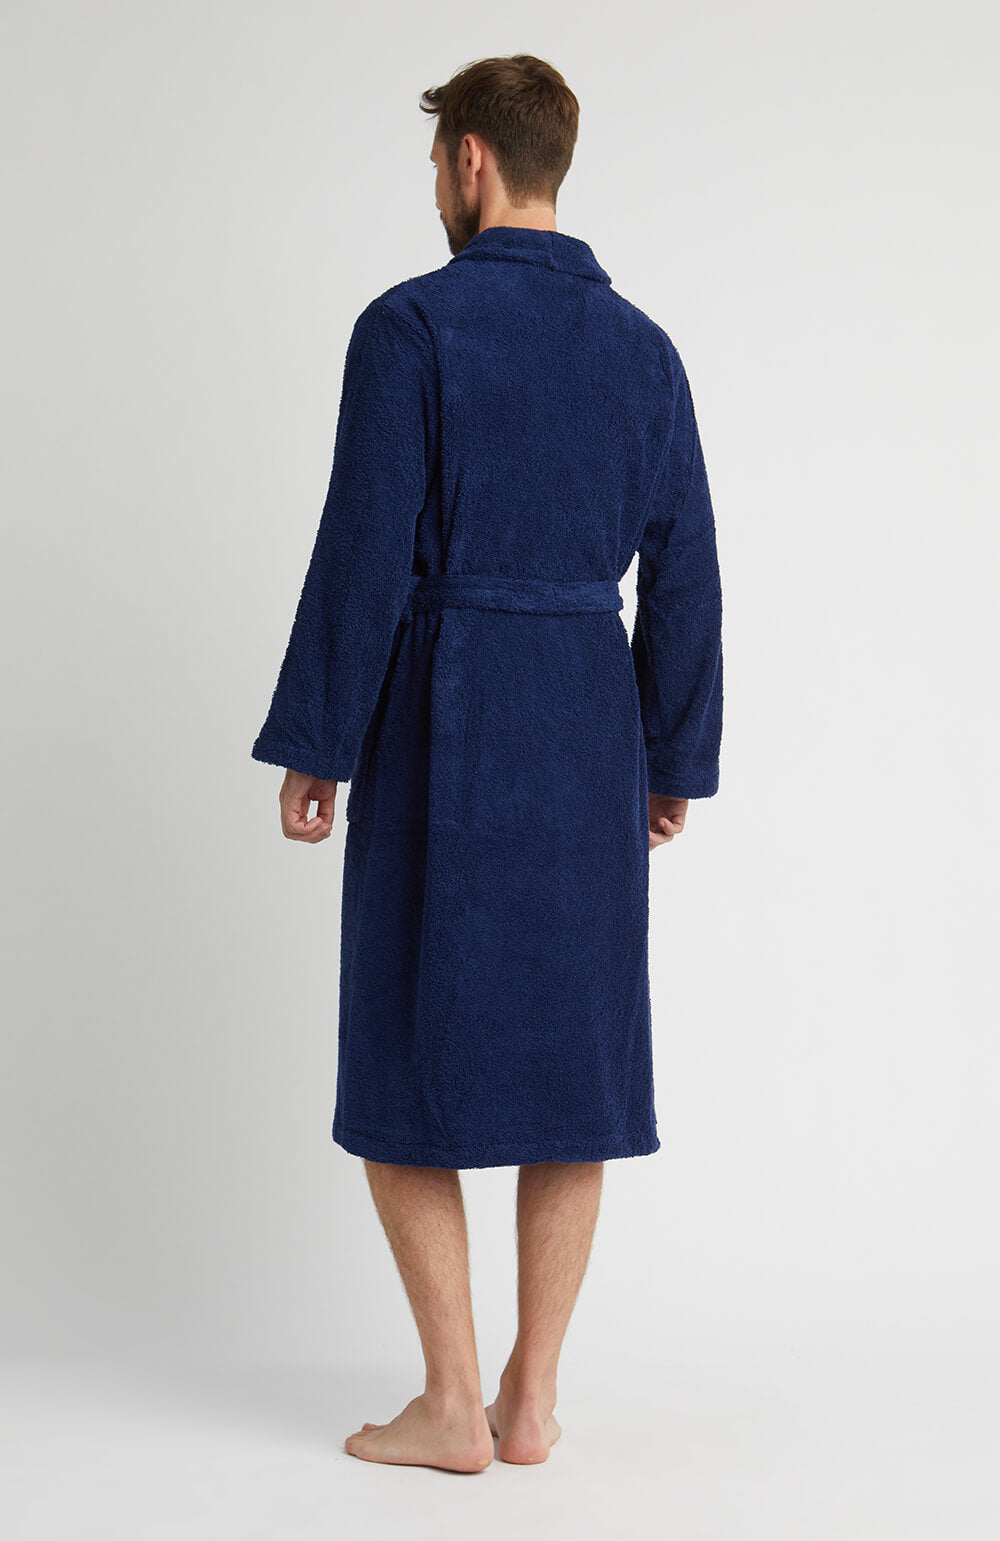 Unisex Towelling Robe (scbr) - Midnight